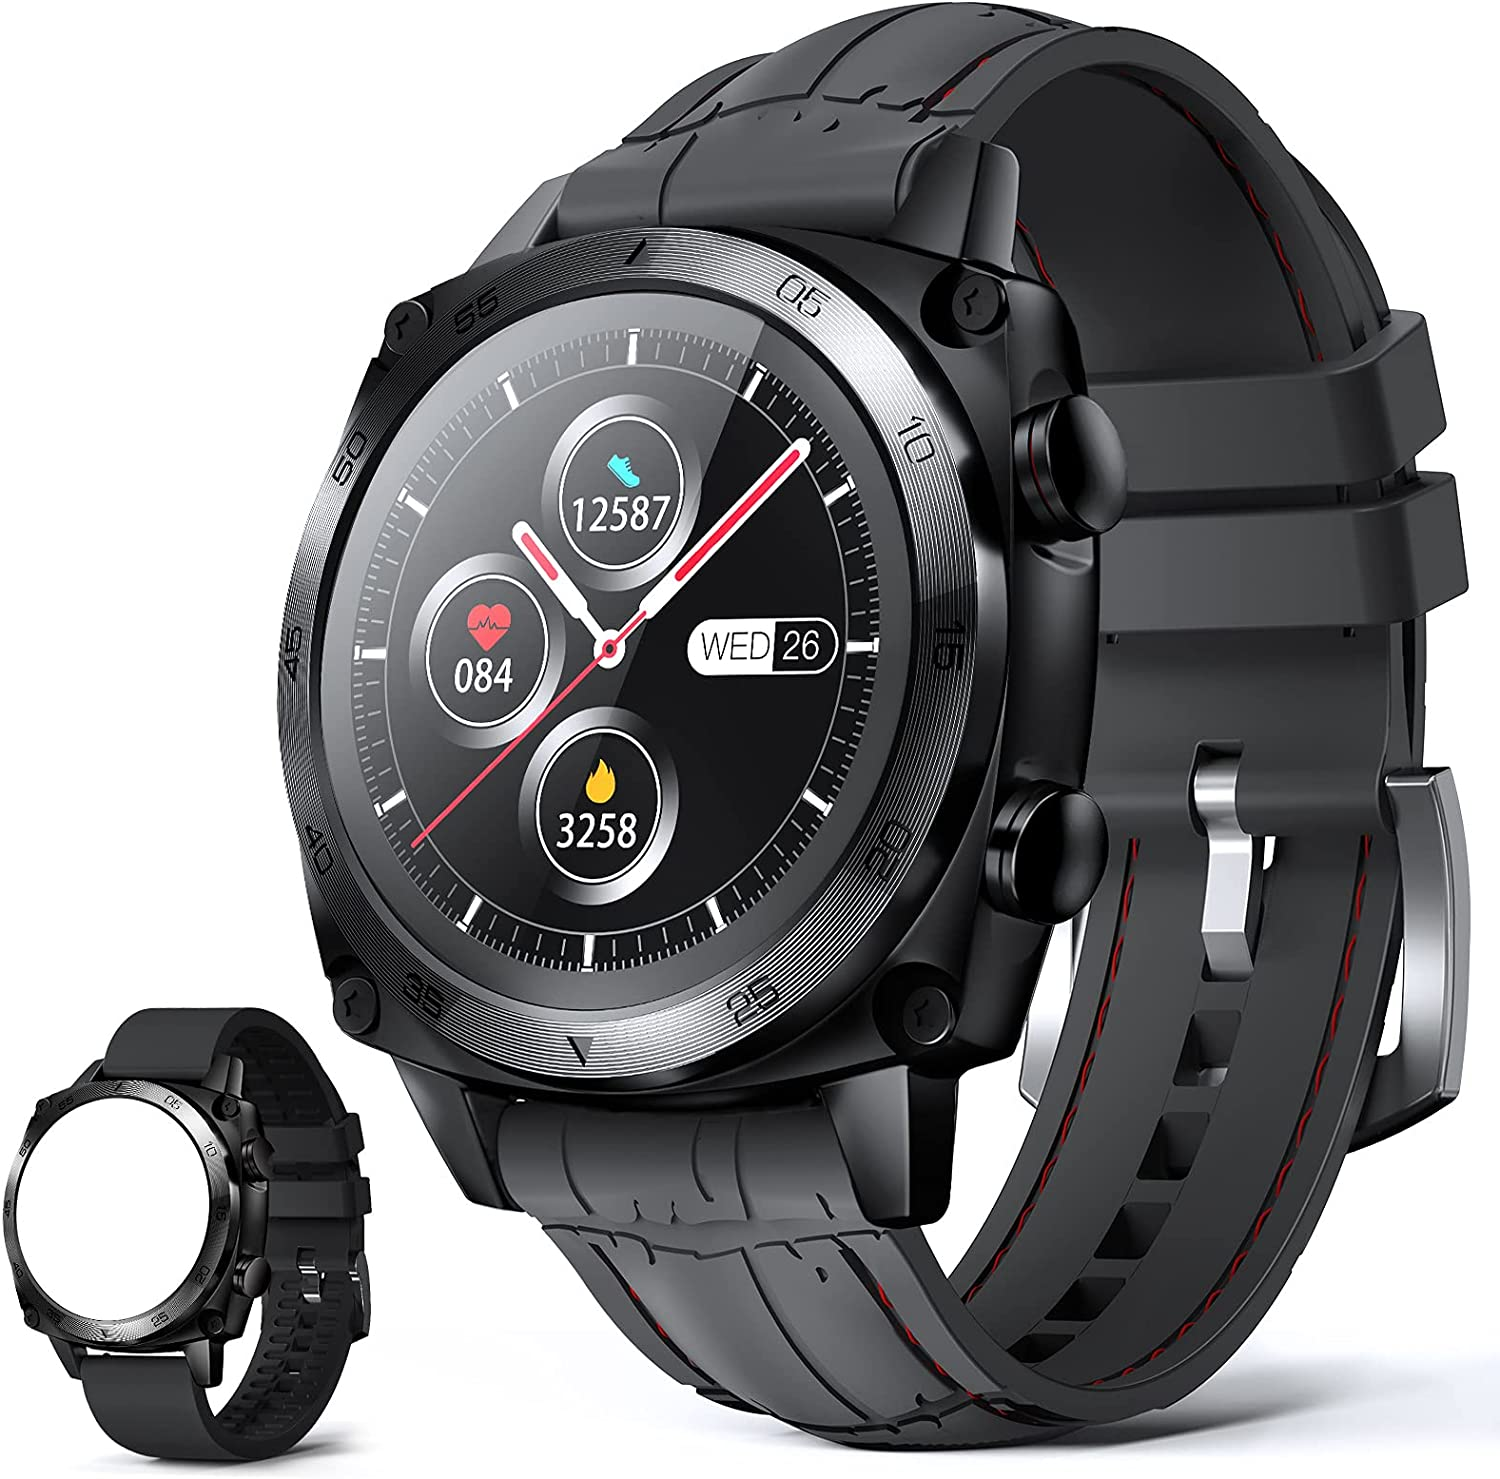 Men Smart Watches, CUBOT Waterproof Fitness Tracker with Heart Rate Monitor, Bluetooth Smartwatch for Android Phones Compatible with iPhone Samsung, Full Touch Screen Sleep Step Monitor, Black